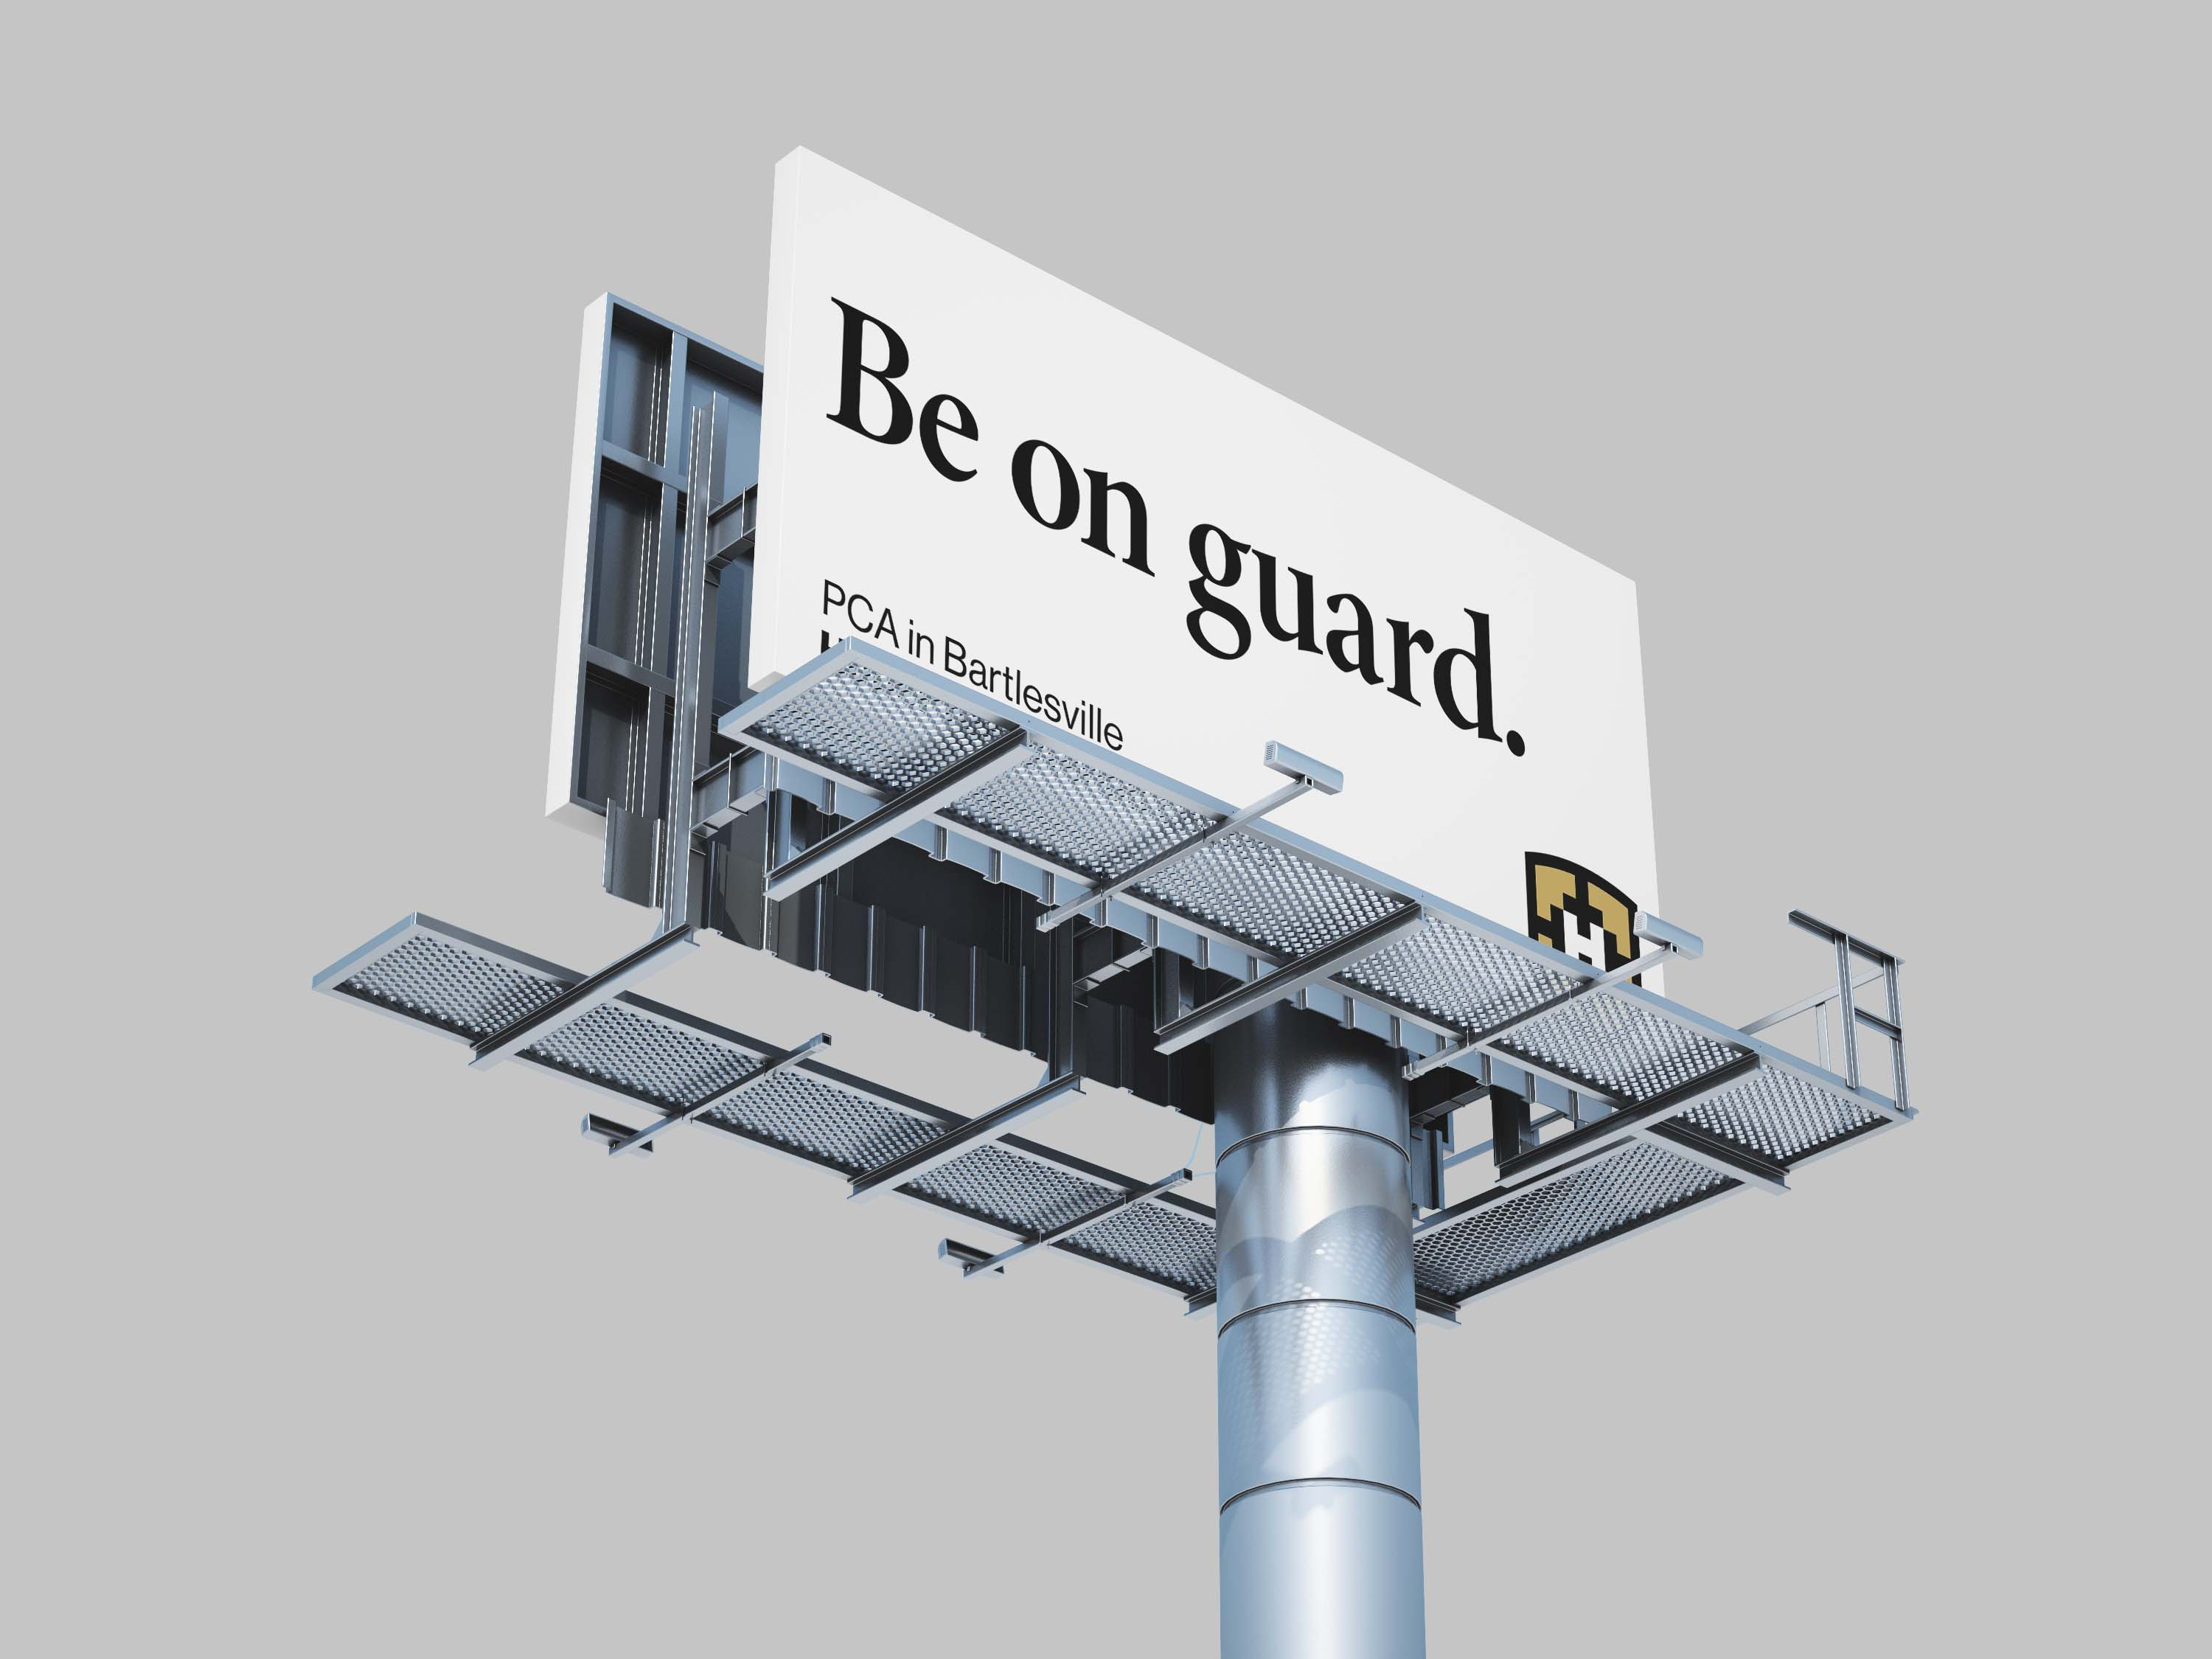 Be on guard.